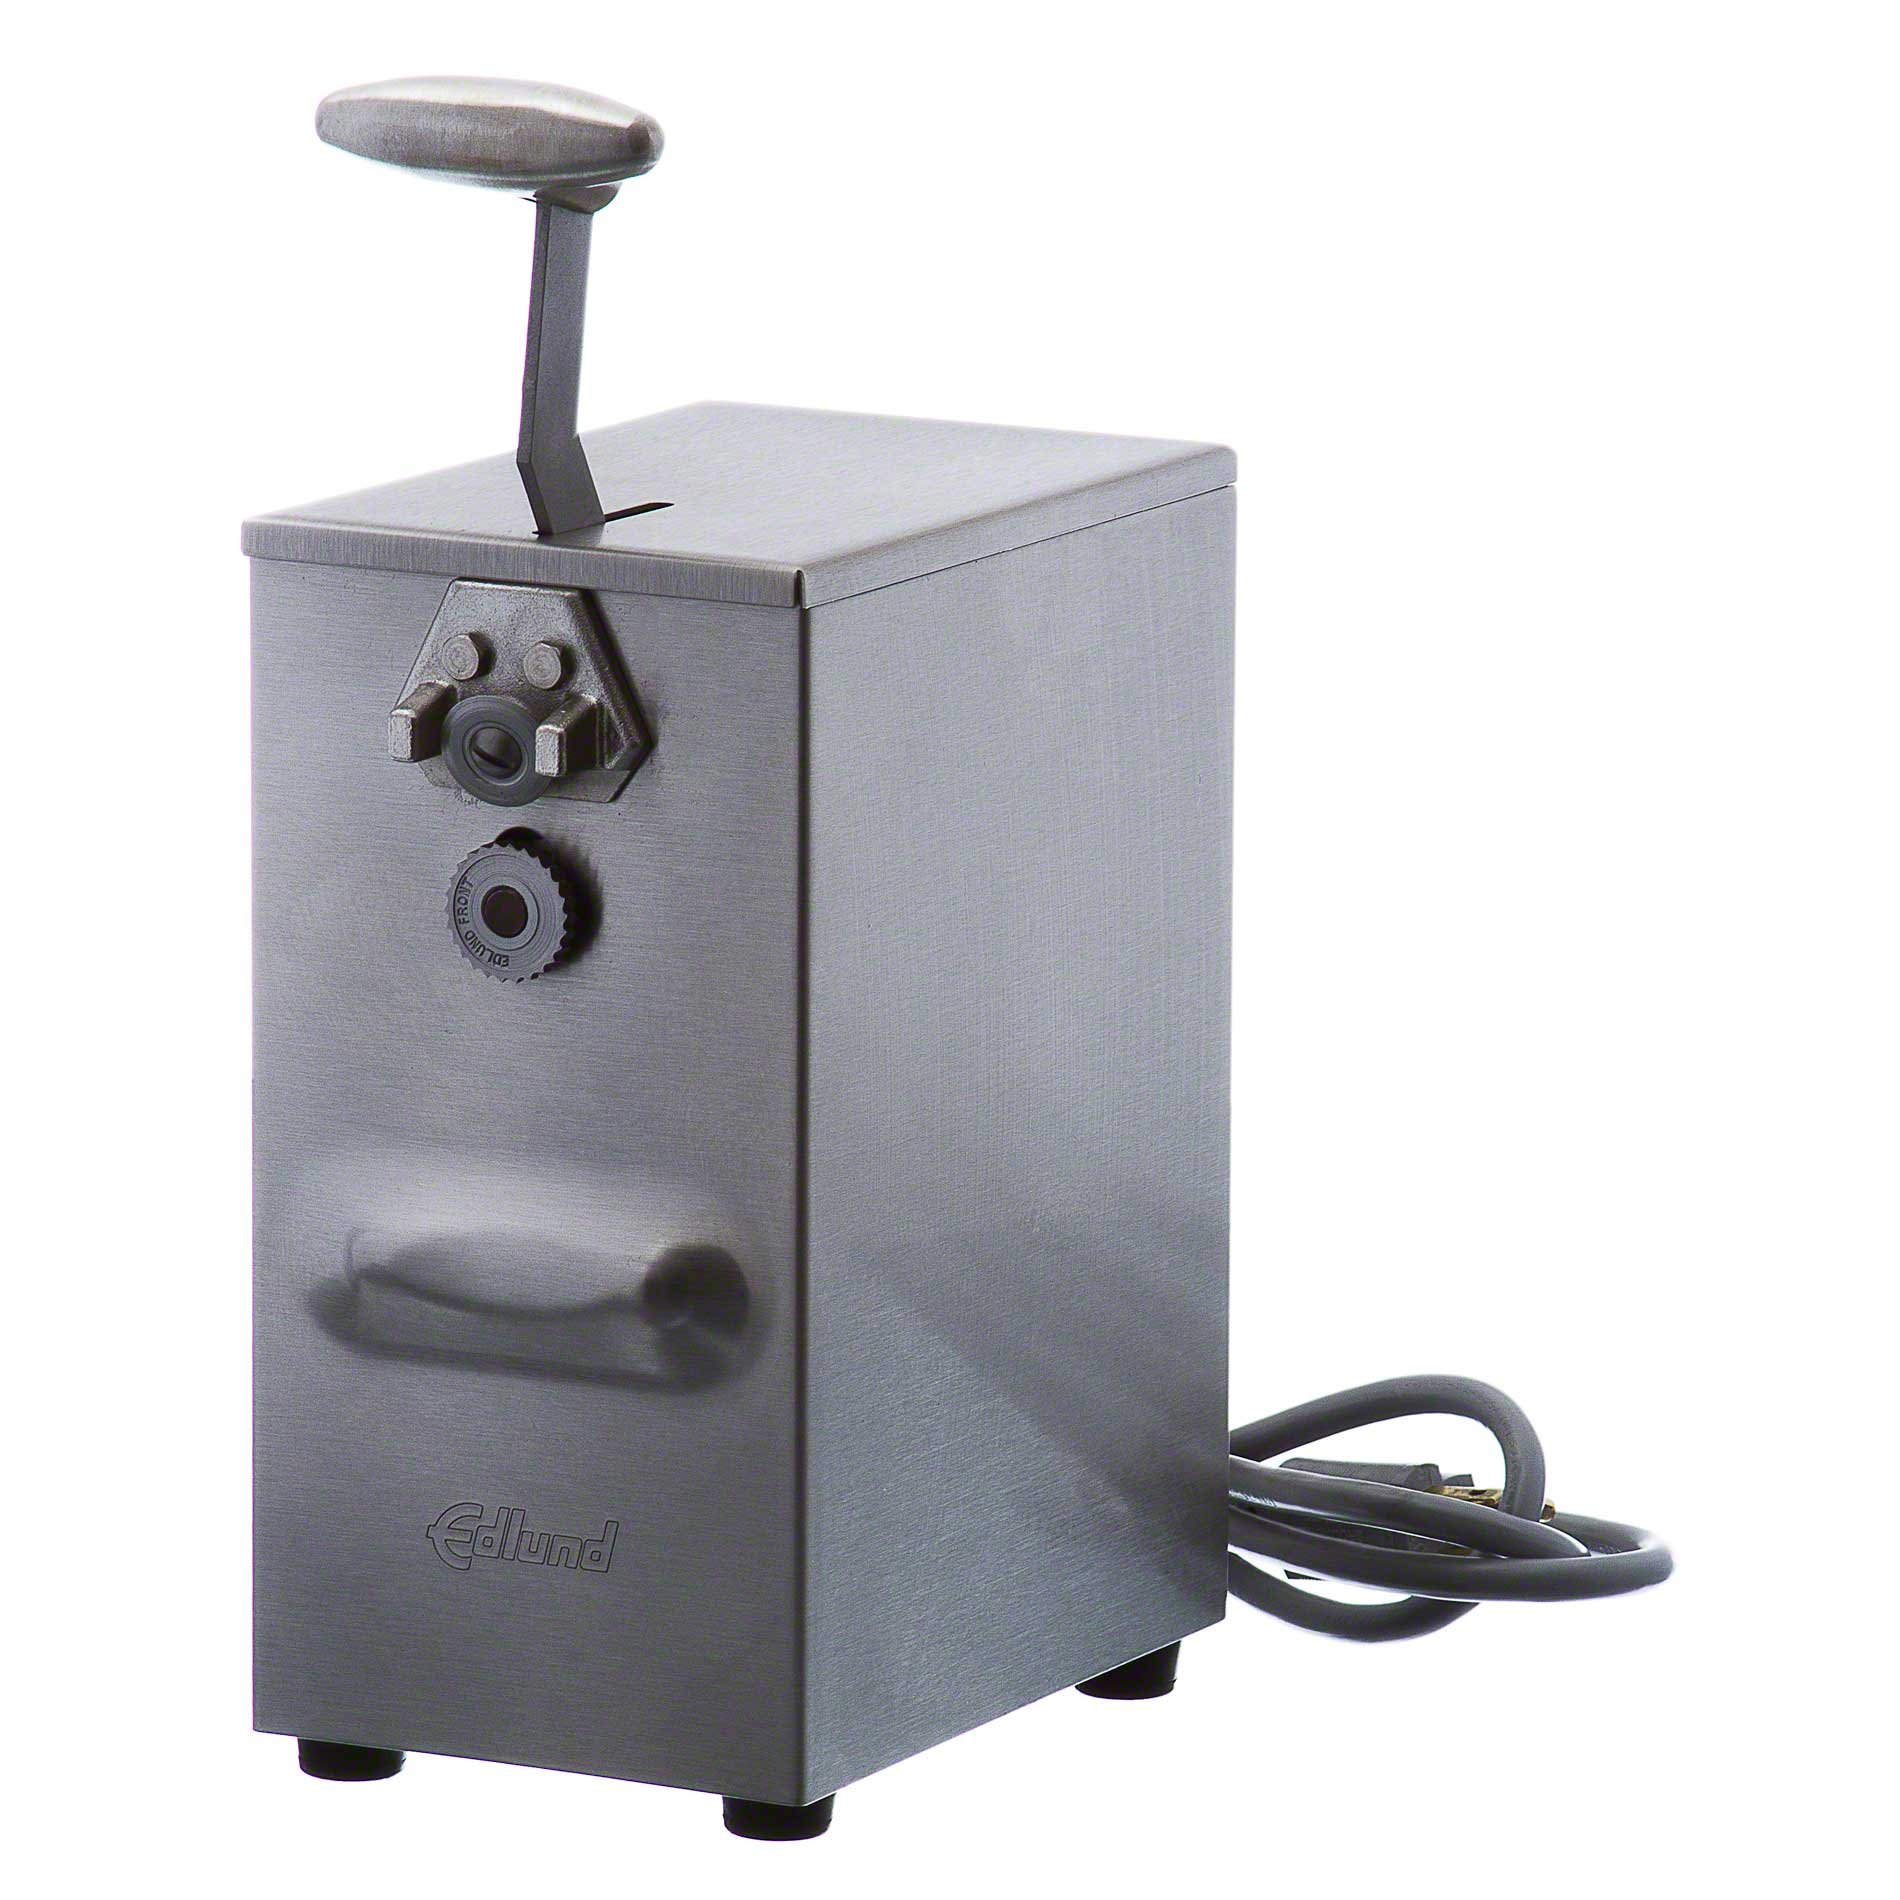 Edlund 203/115V Electric 2-Speed Can Opener Up to 75 Cans per day